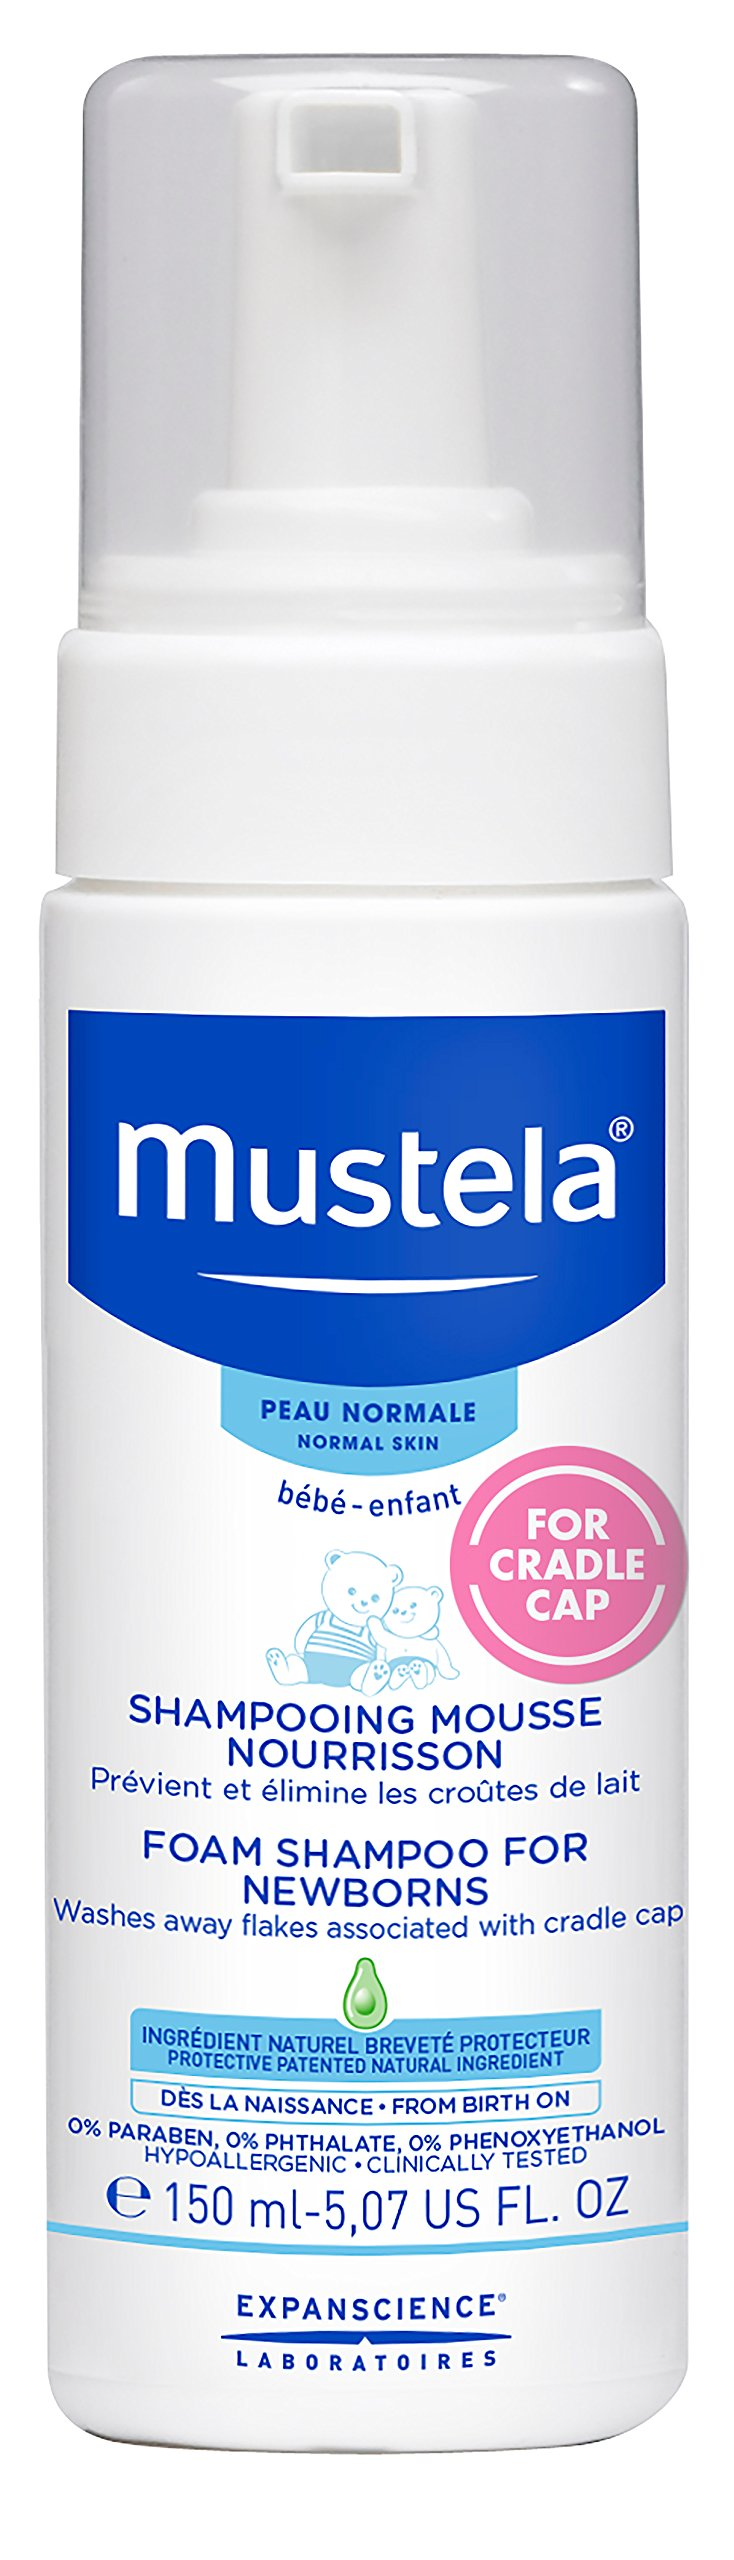 Mustela Foam Shampoo for Newborns, Baby Shampoo, Helps Prevent and Reduce Cradle Cap, with Natural Avocado Perseose, 5.07 Ounce by Mustela